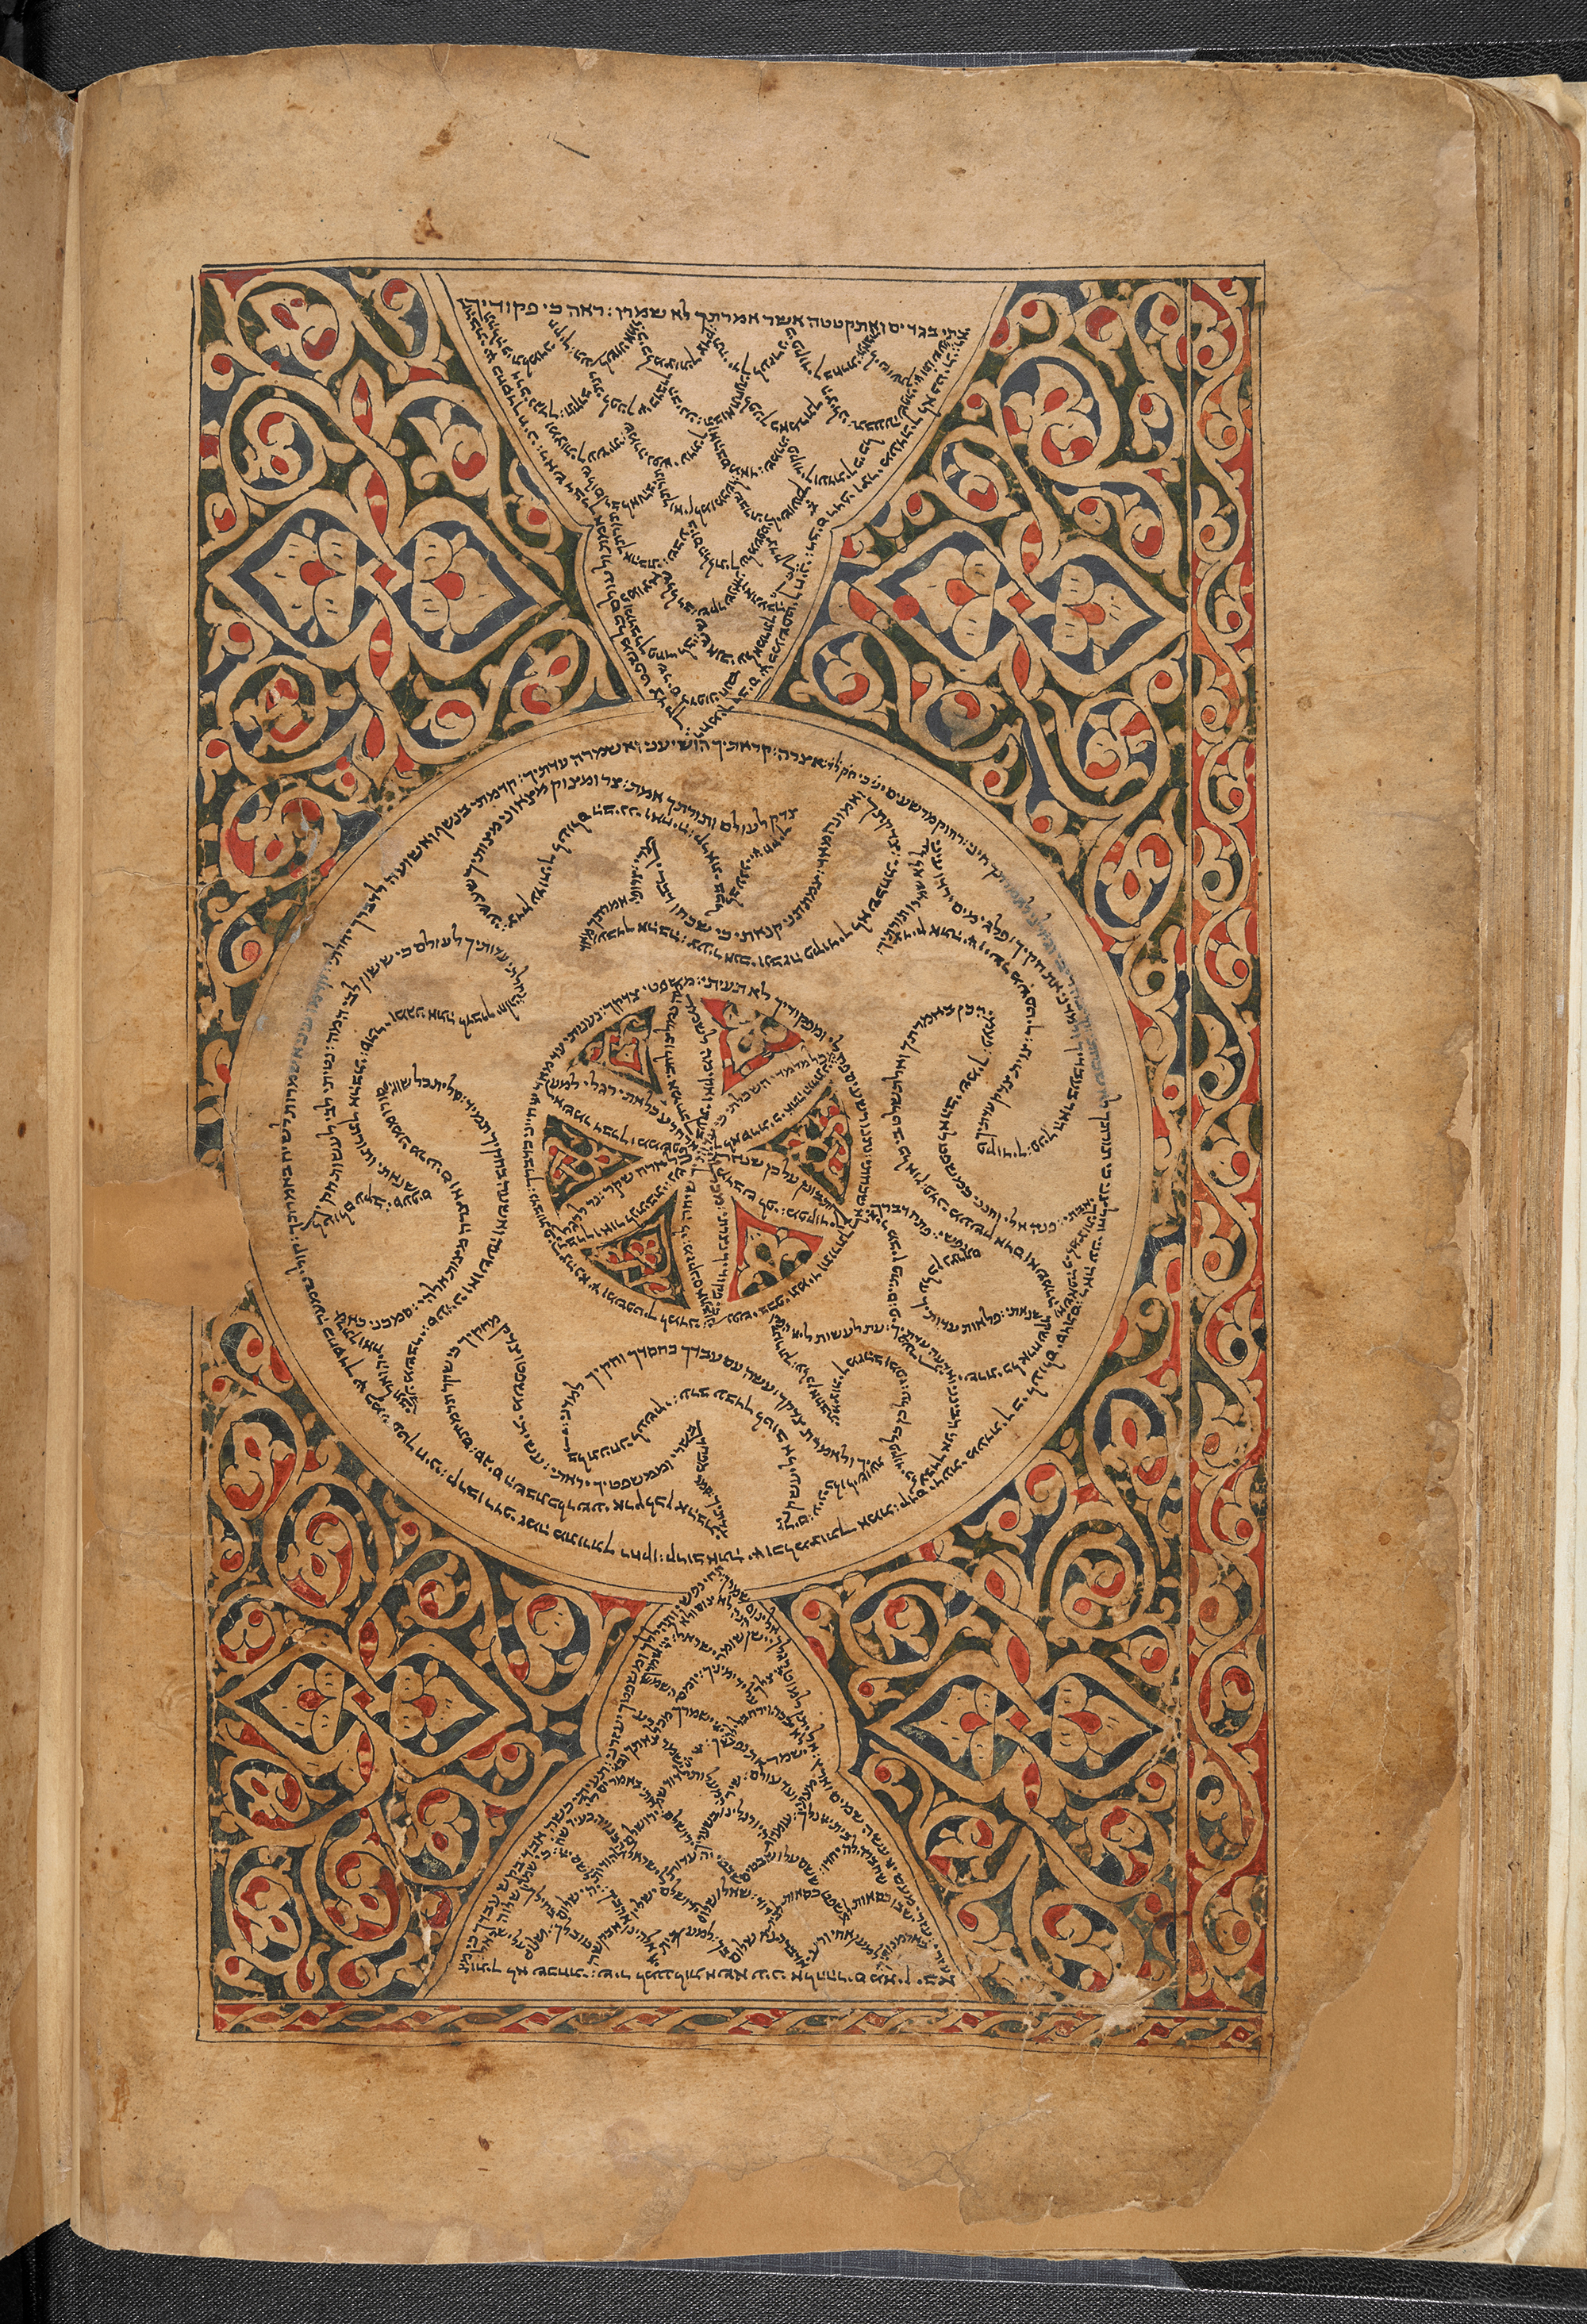 Carpet pages with verses from the Psalms in micrography. Yemen, Sana'a, 1469 CE. Grammatical Introduction (Makhberet ha-Tigan), Or 2348, Hebrew Manuscripts Digitisation Project, British Library